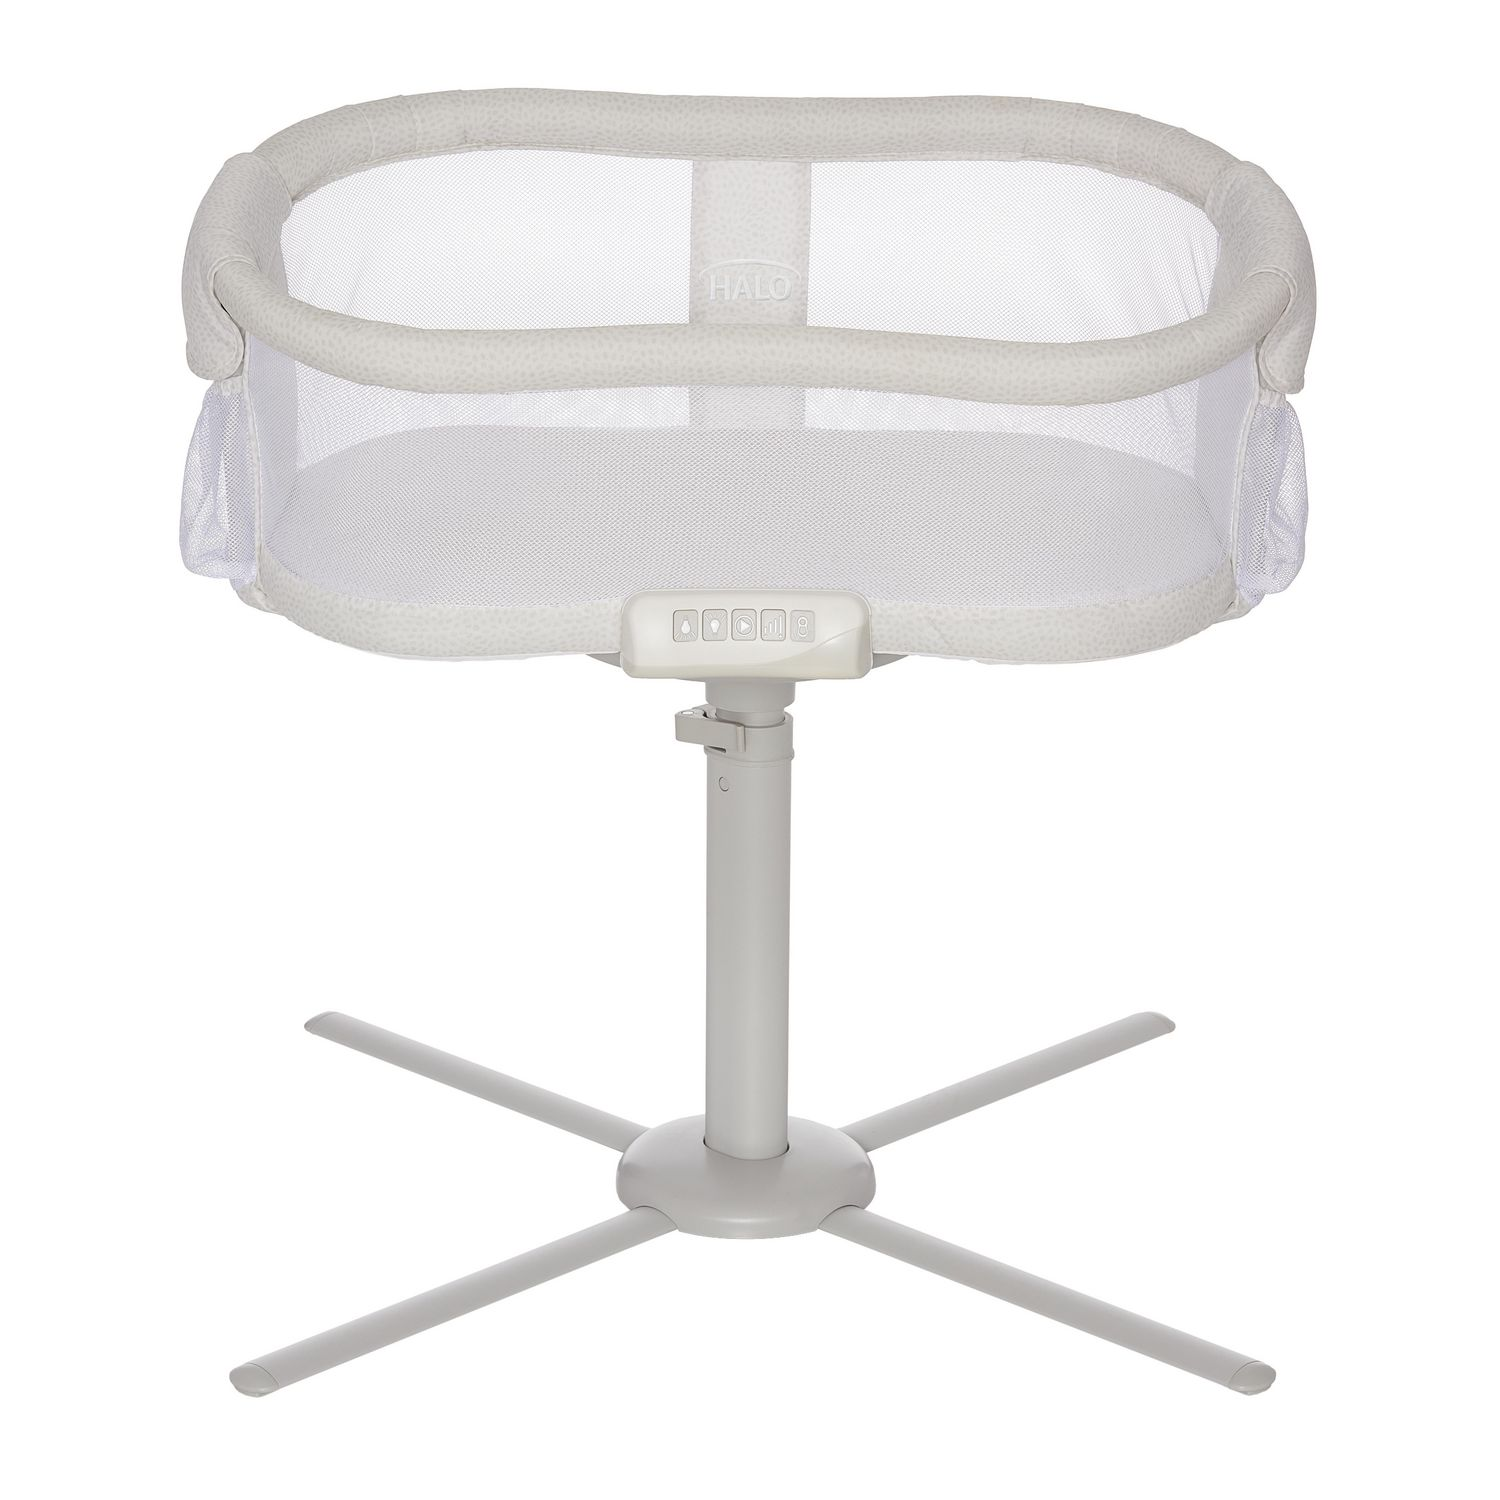 Halo Bassinest Swivel Sleeper — Best Bassinet Overall